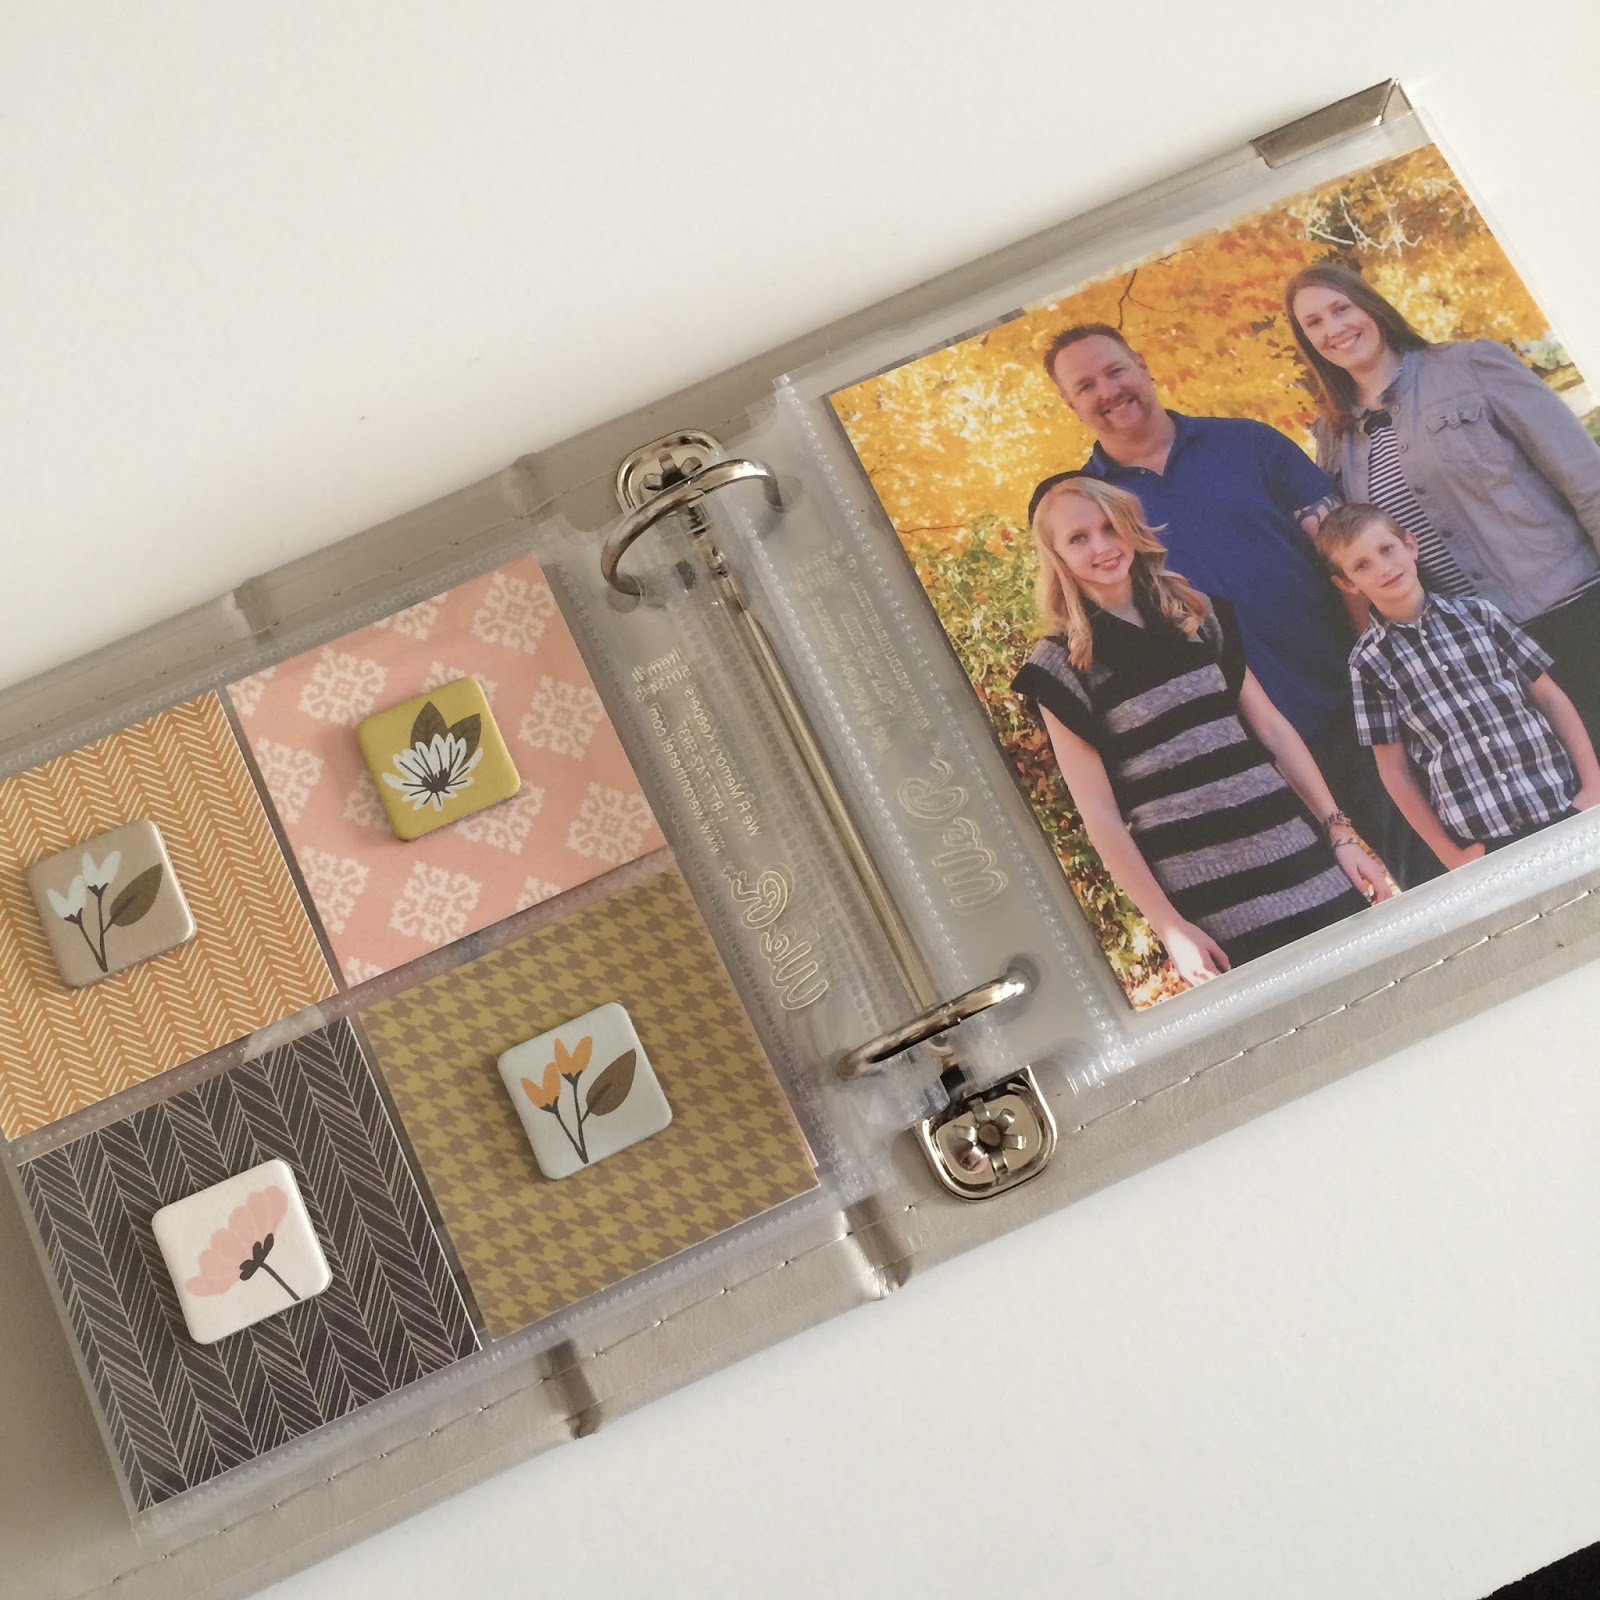 http://thatbeckygirlcrafts.blogspot.com/2014/10/family-is-forever.html